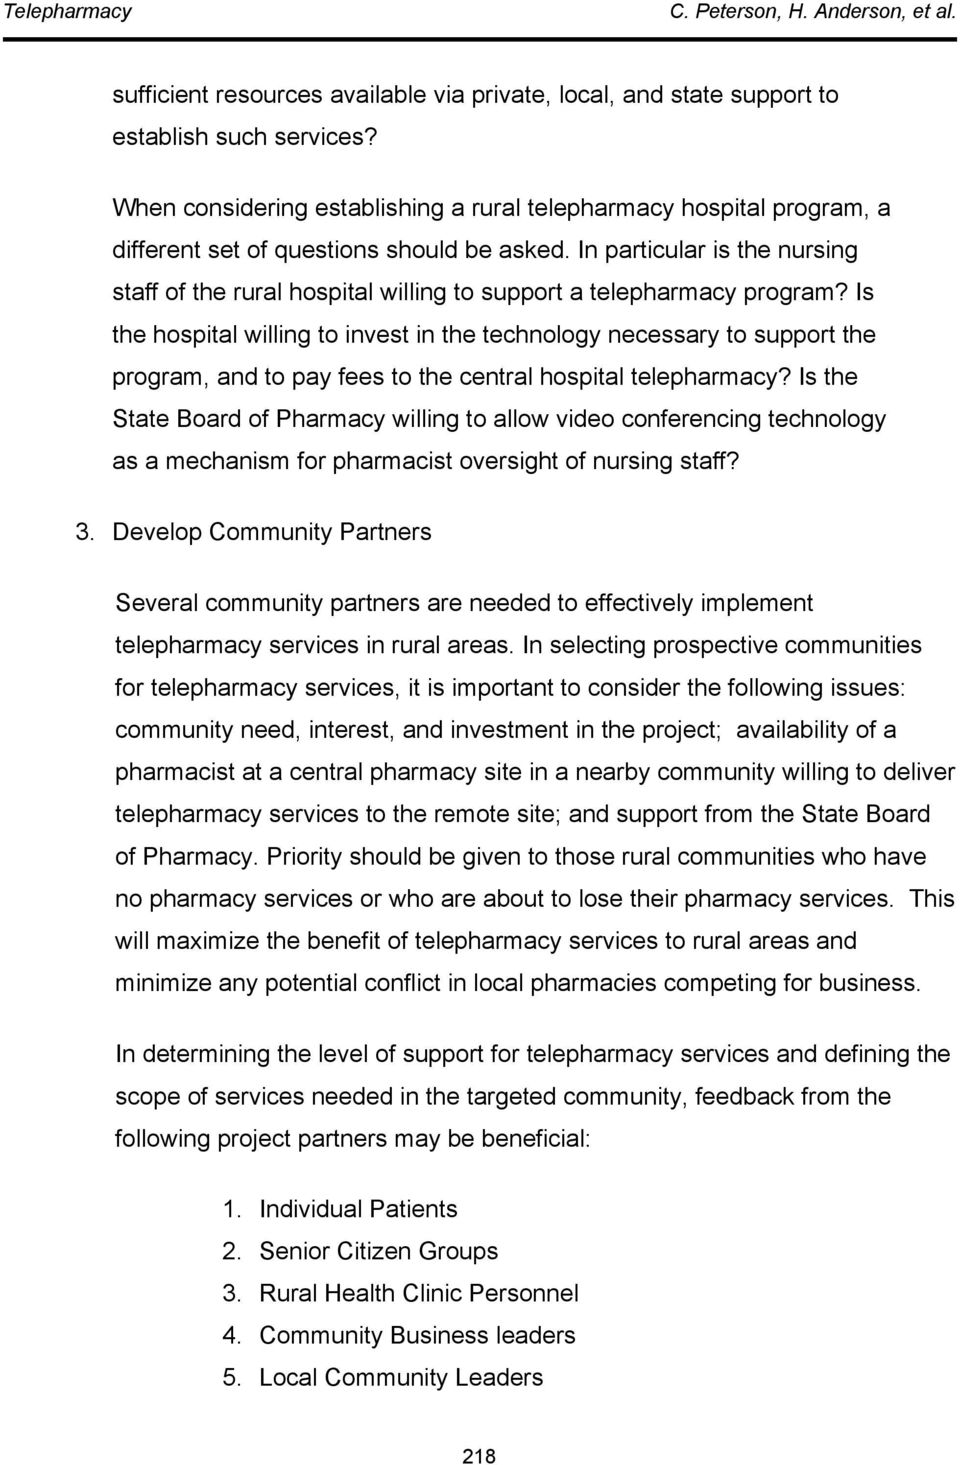 In particular is the nursing staff of the rural hospital willing to support a telepharmacy program?